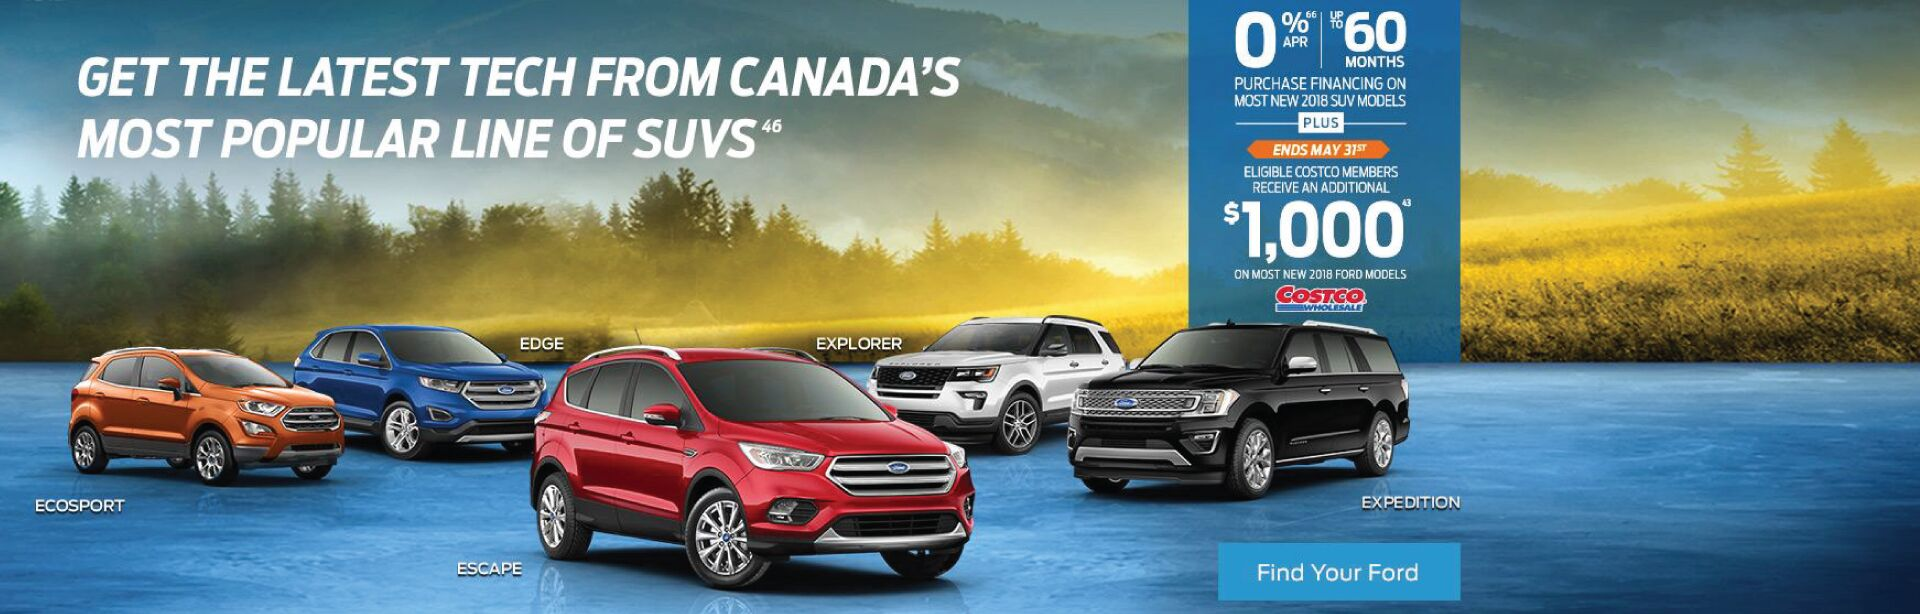 Ford SUV May Incentive